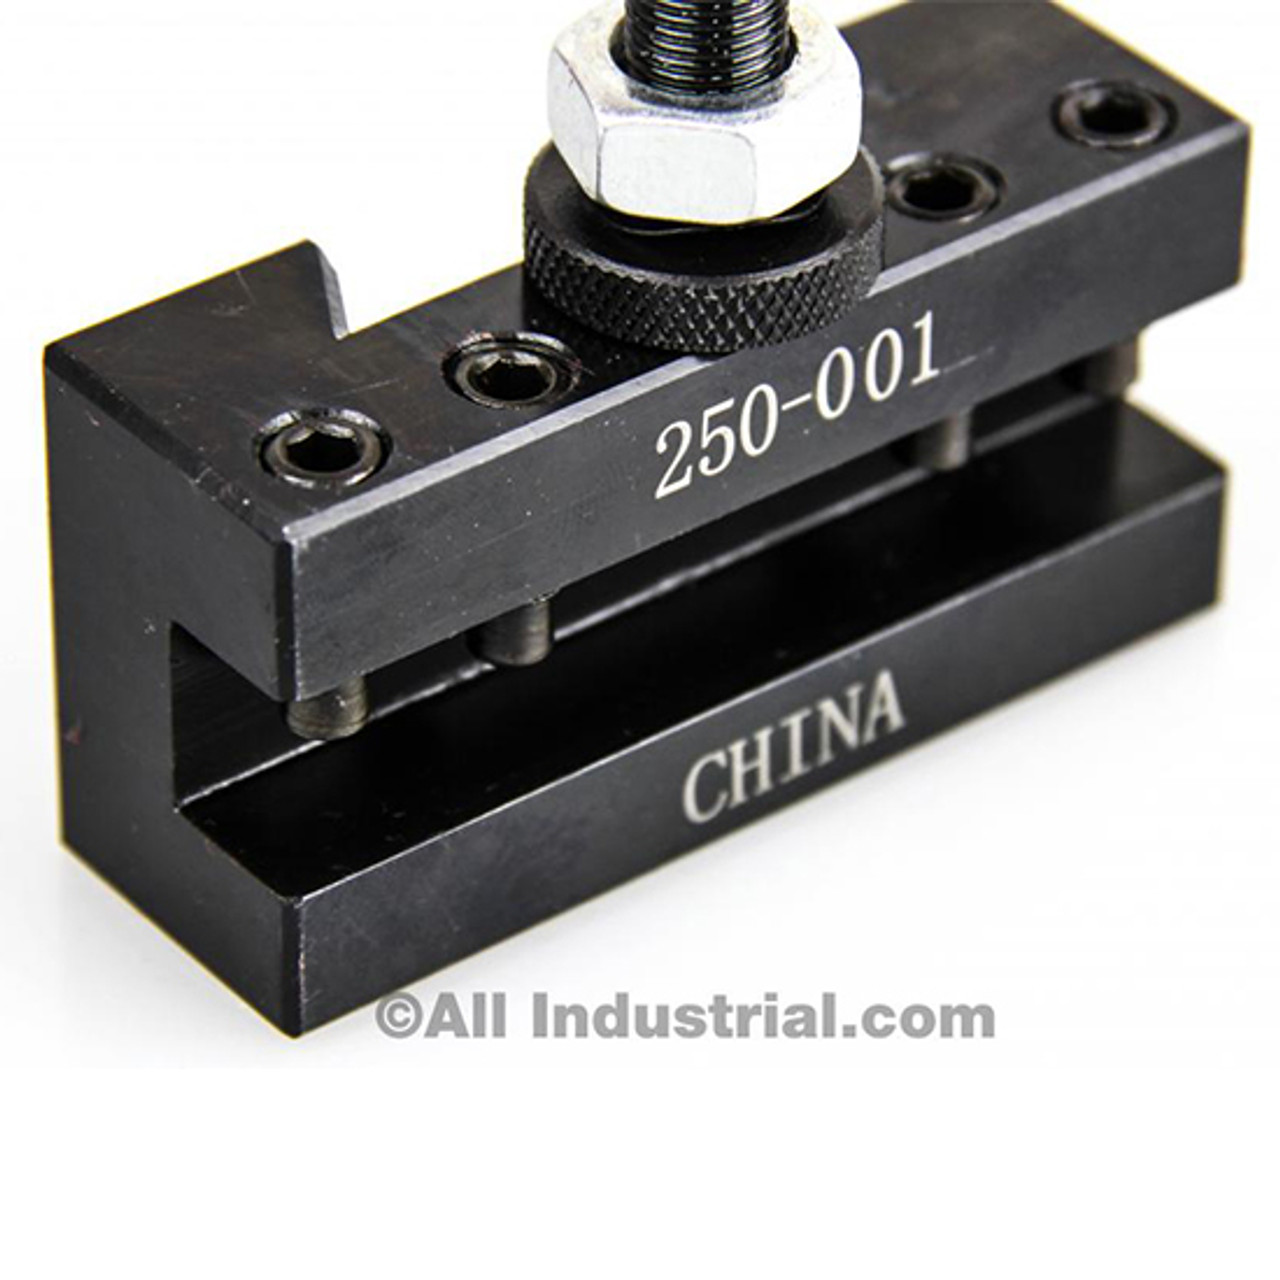 """NEW OXA Wedge Type Tool Post Set 250-000 For Mini Lathe 8/"""" and Two Extra 250-001"""